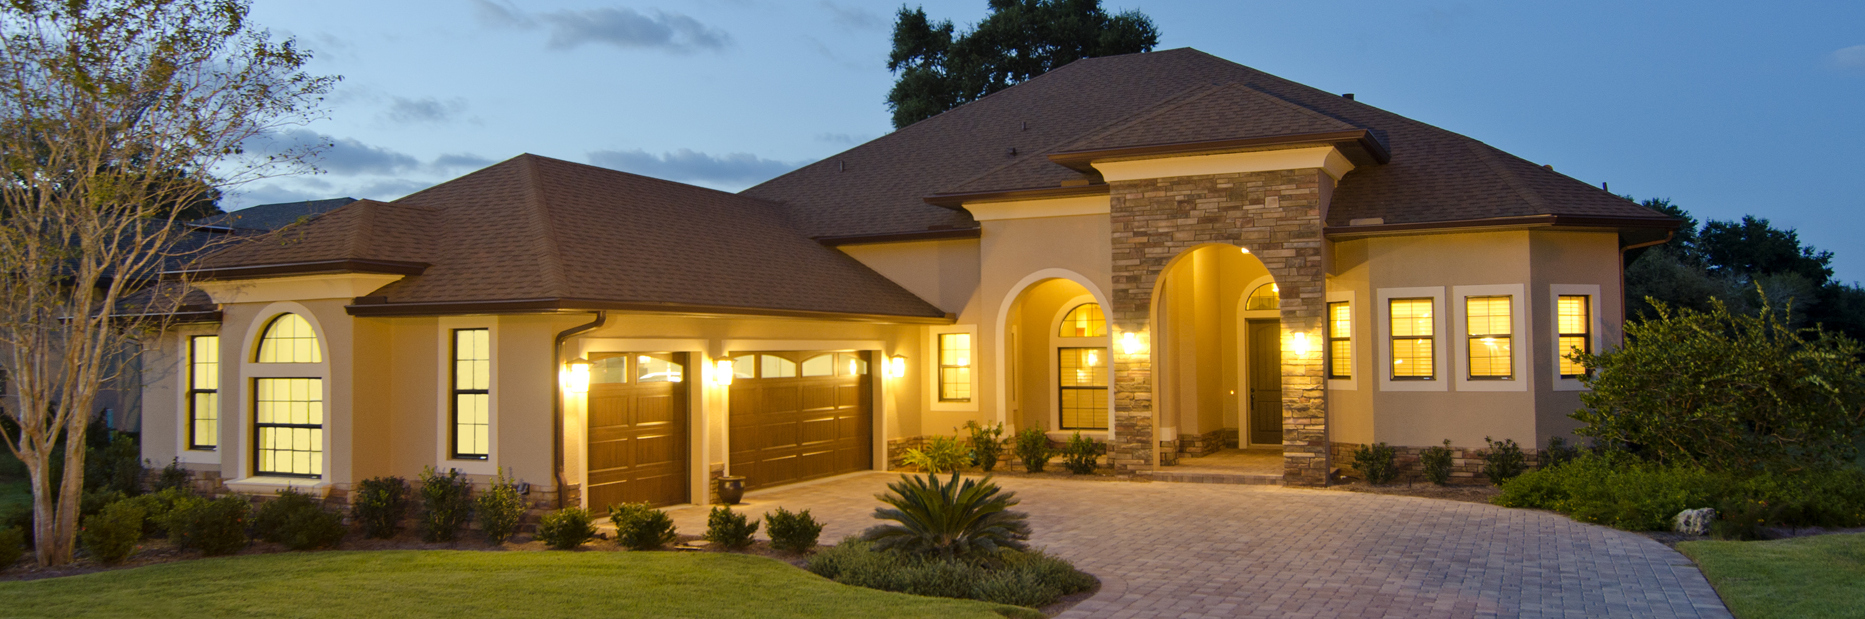 Golf Course Homes For Sale Tyrone Ga